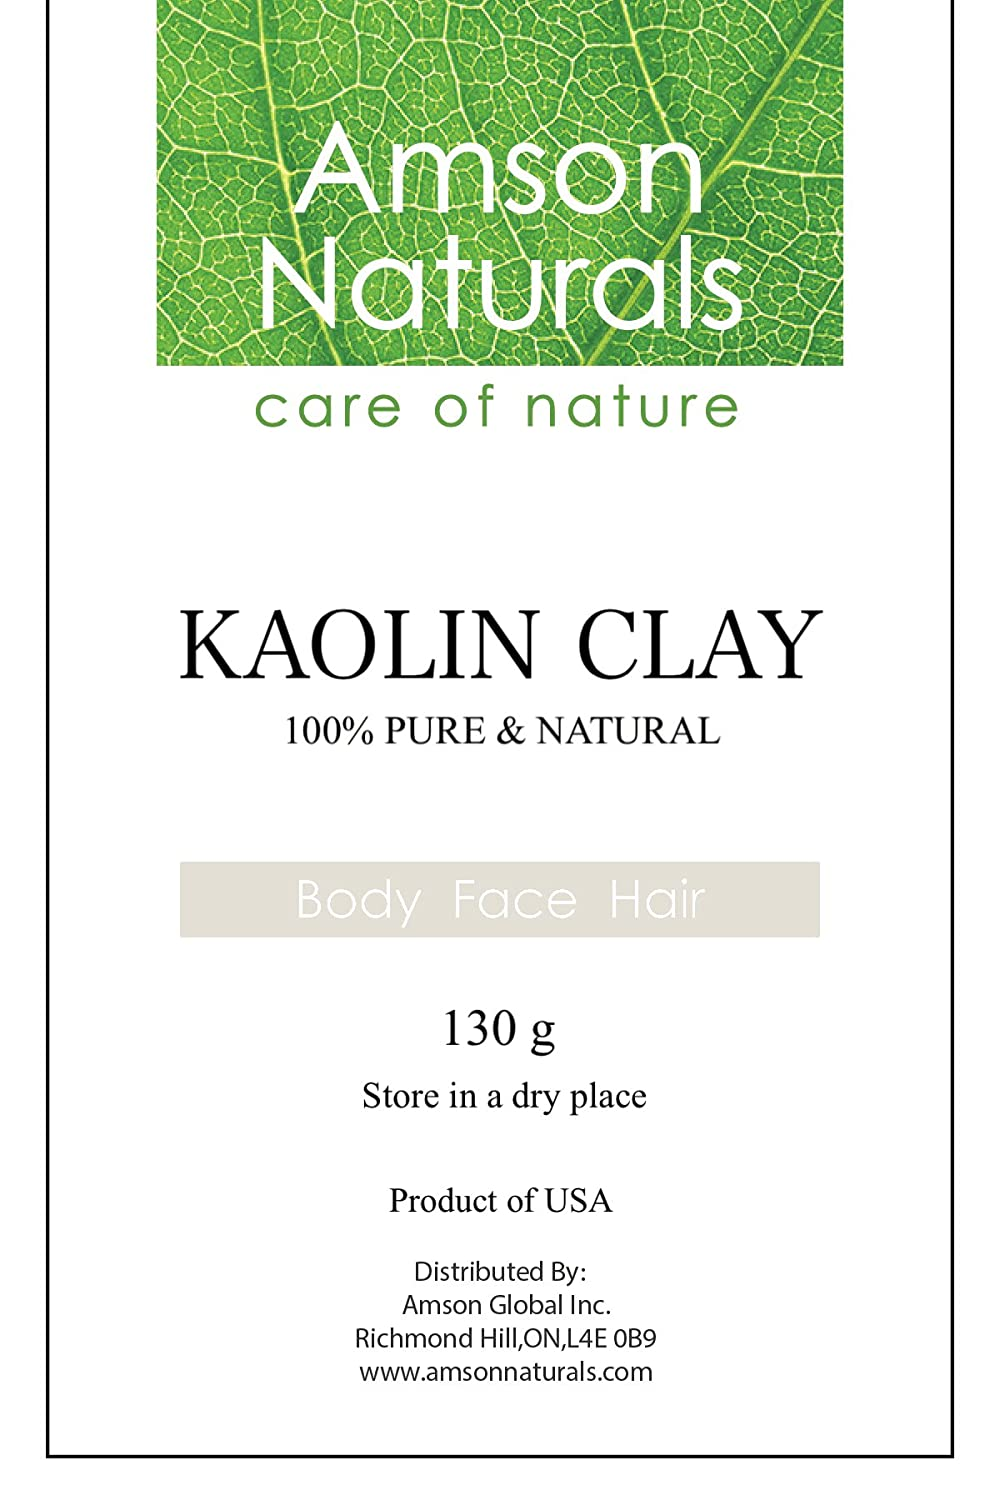 KAOLIN CLAY -230g-by Amson Naturals-100% Pure & Natural – Excellent for Facial Mask, Body Scrubs, Lotions, Creams, Hair Care Products and DIY recipes.